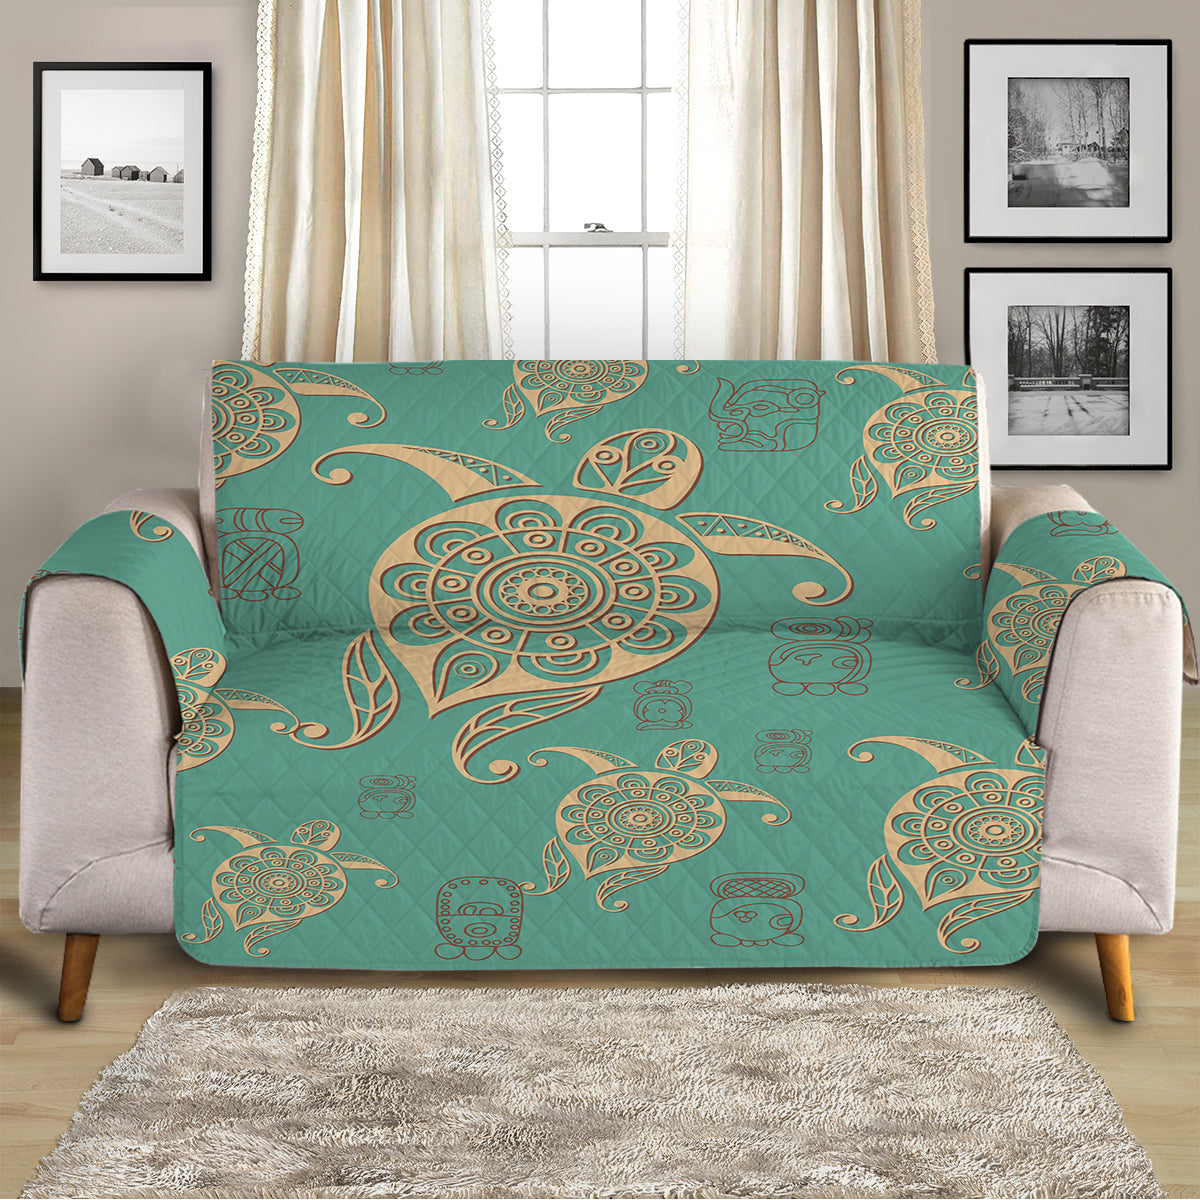 Turtles in Turquoise Sofa Cover